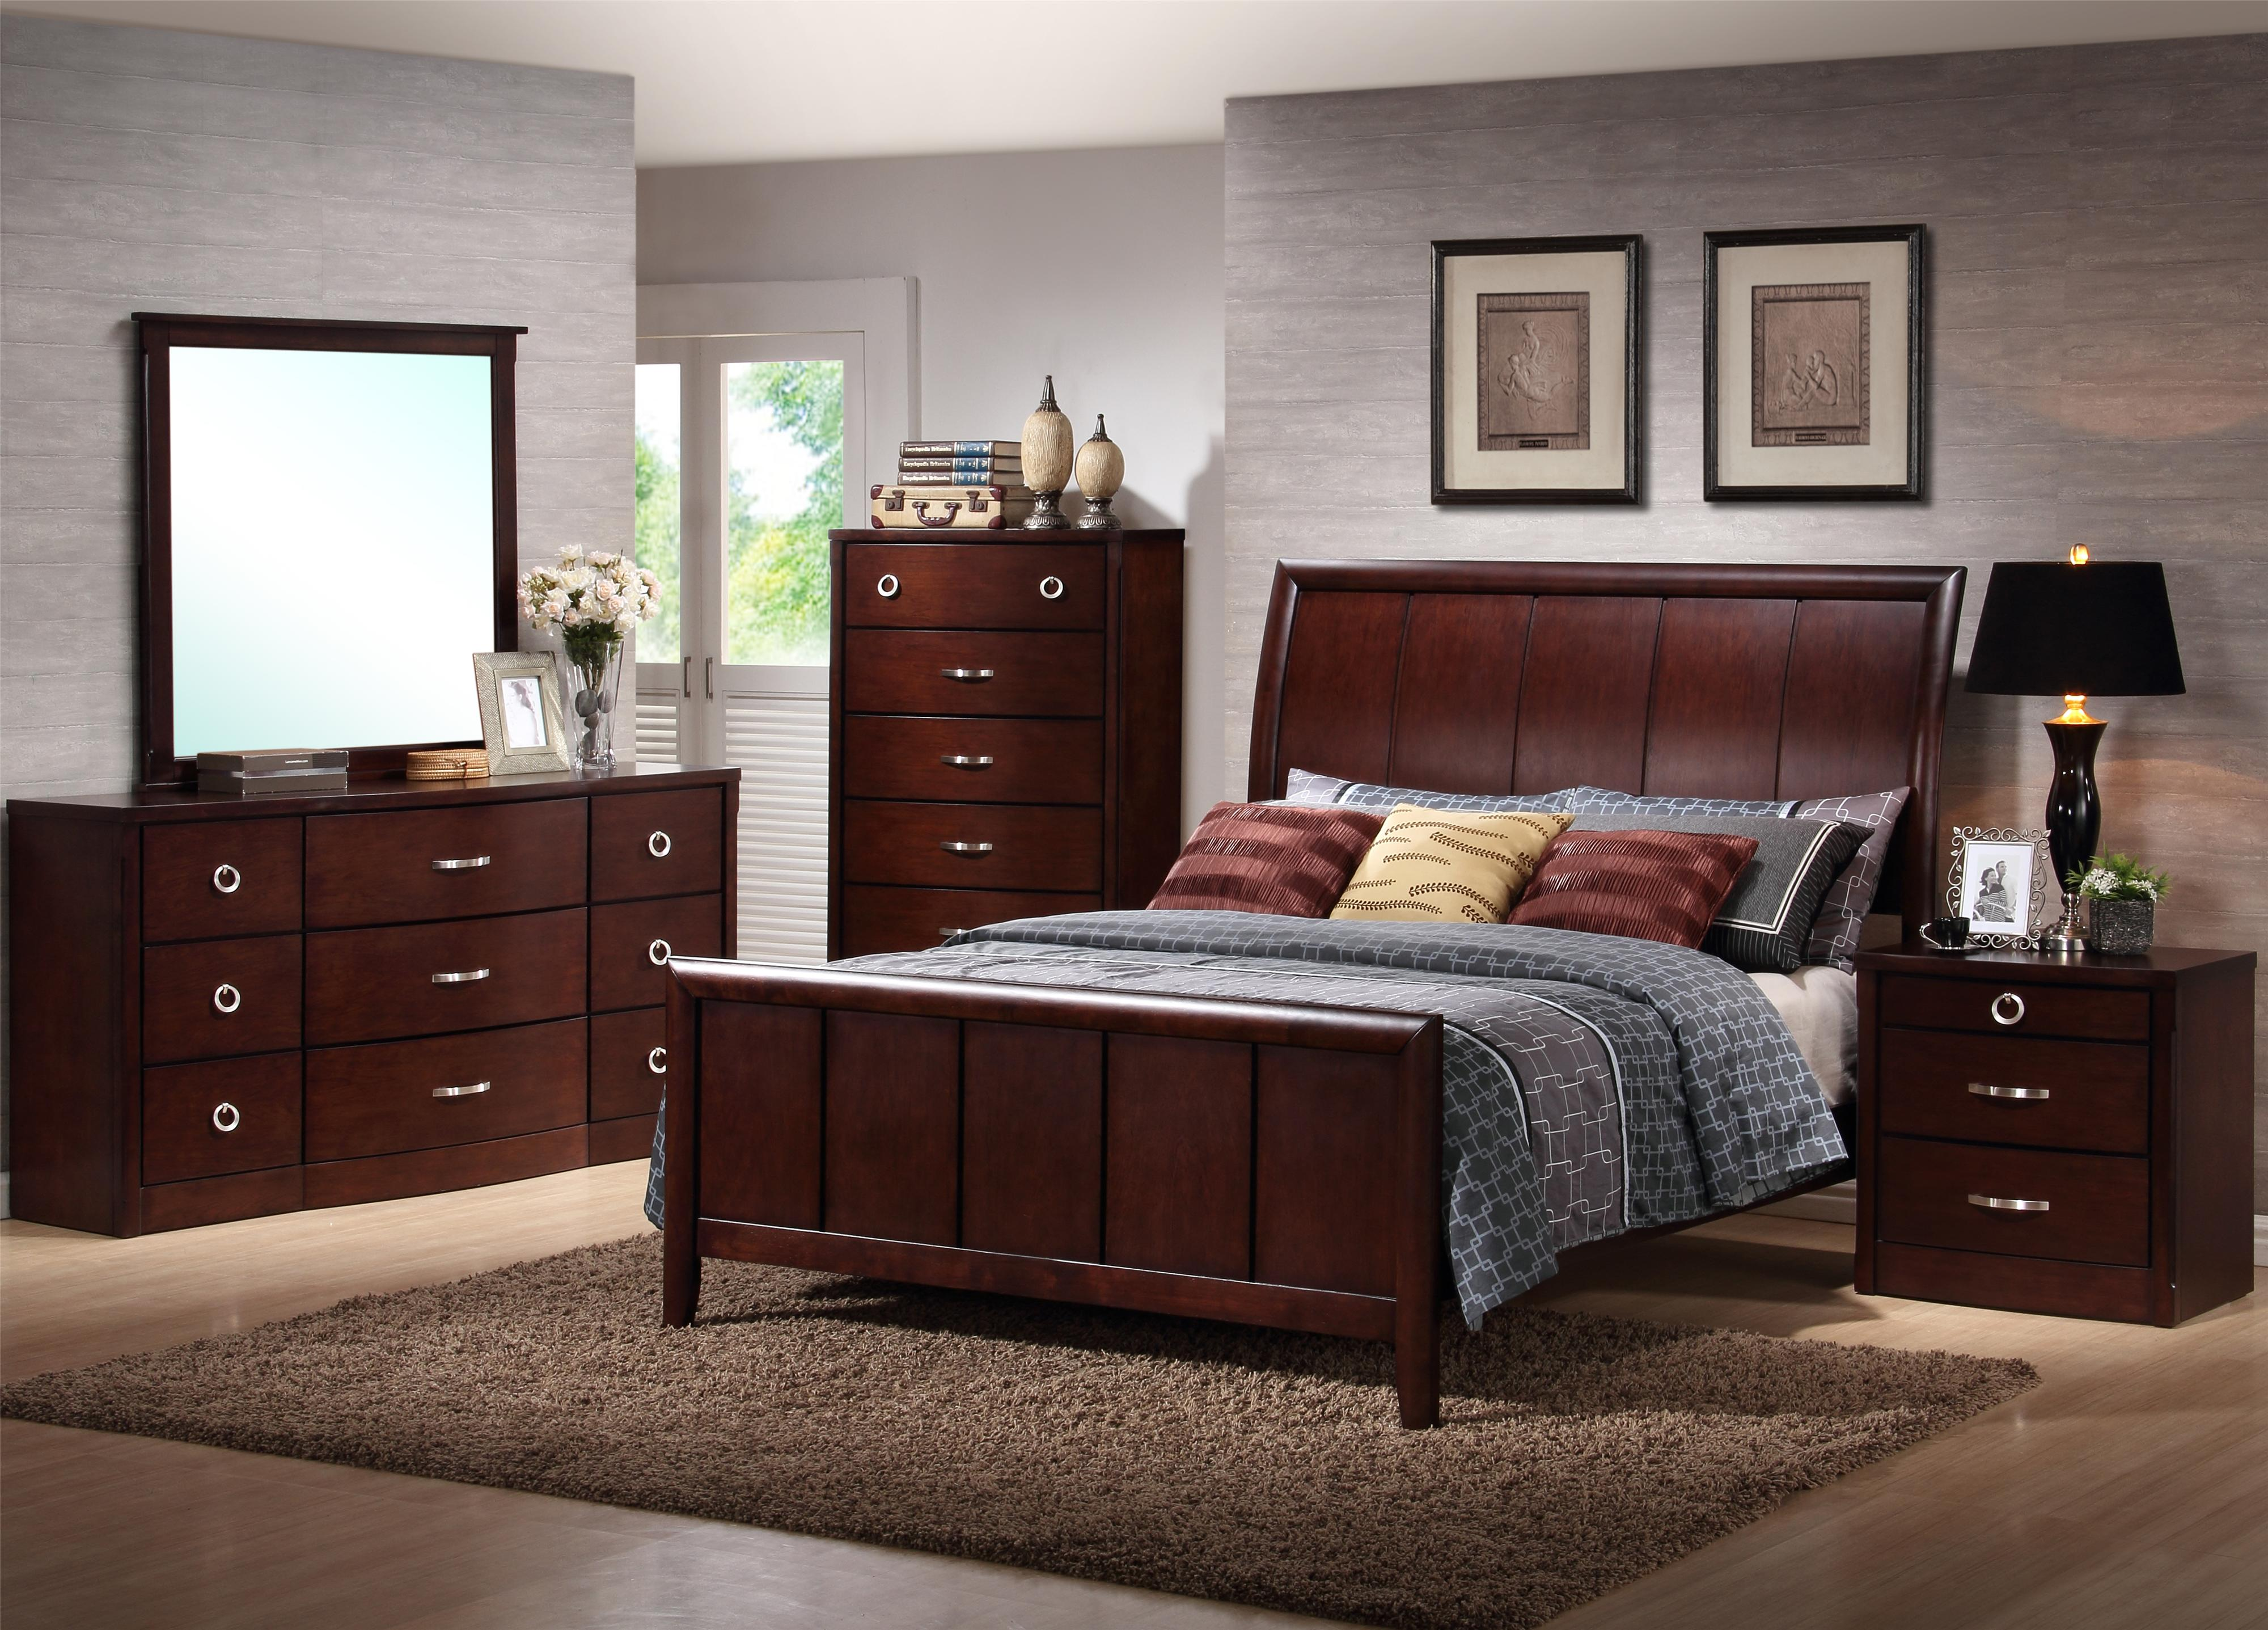 Lifestyle Bedroom Furniture Lifestyle 1173 Queen Bed W Sleigh Headboard Furniture Fair